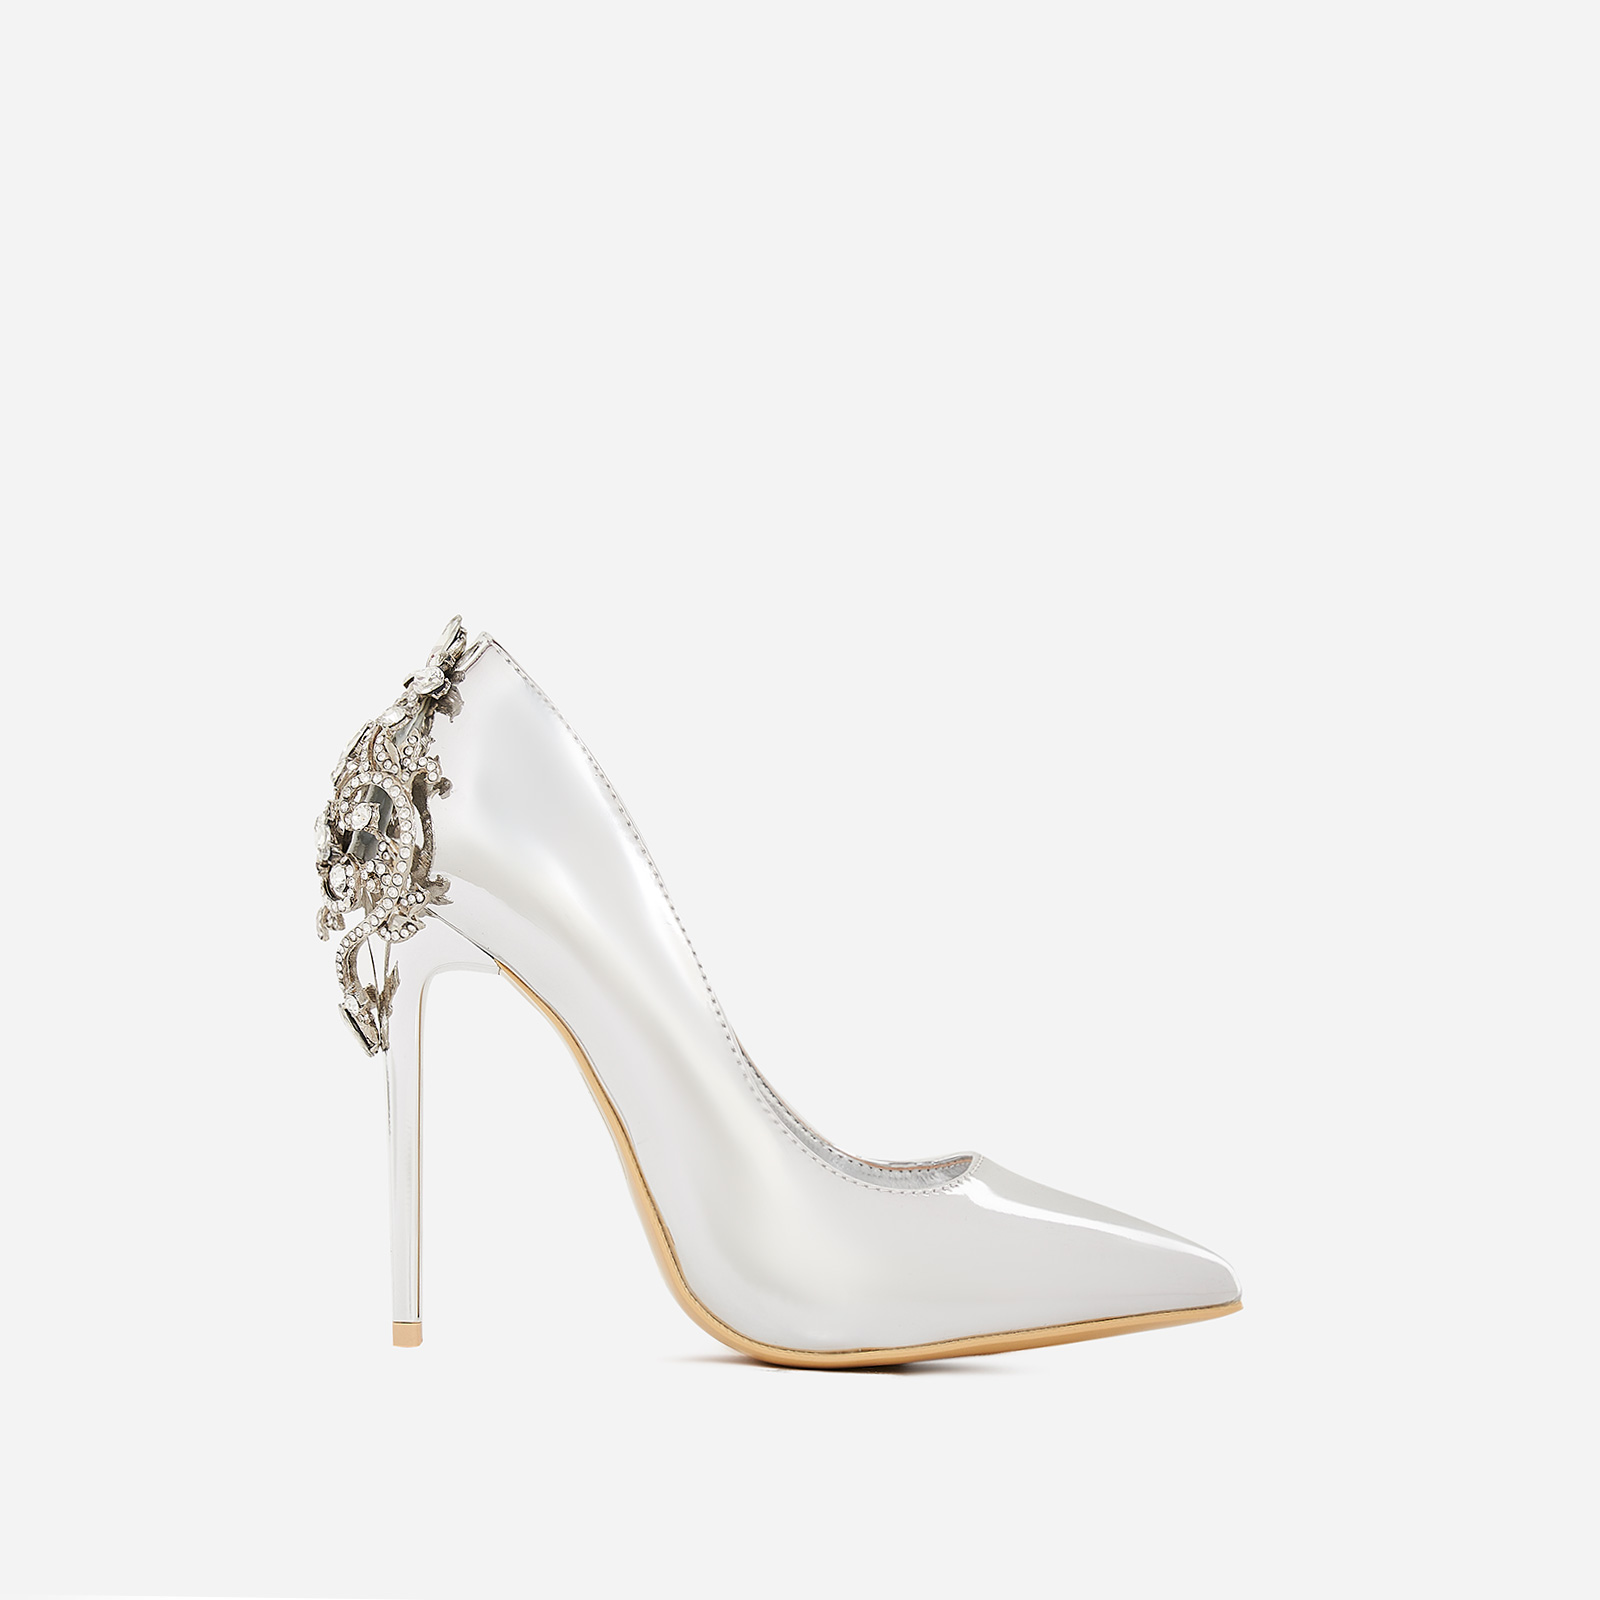 Aries Jewel Embellished Court Heel In Metallic Silver Patent